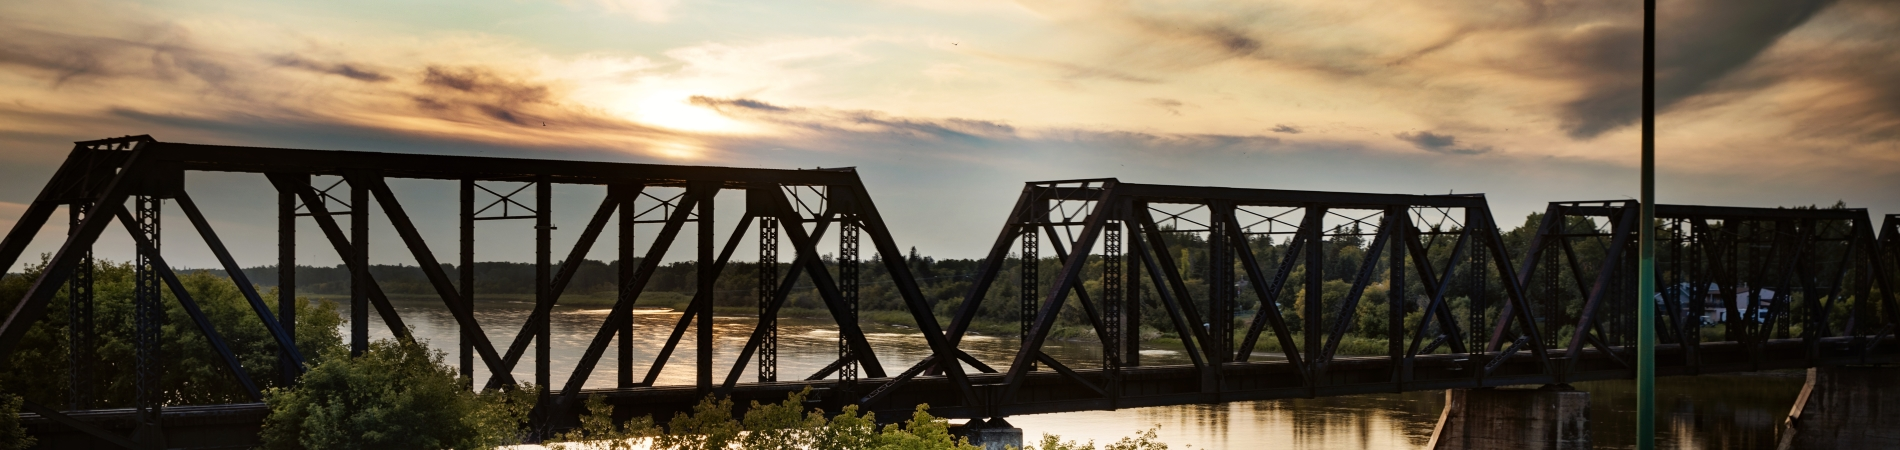 Train bridge over the river at sunset